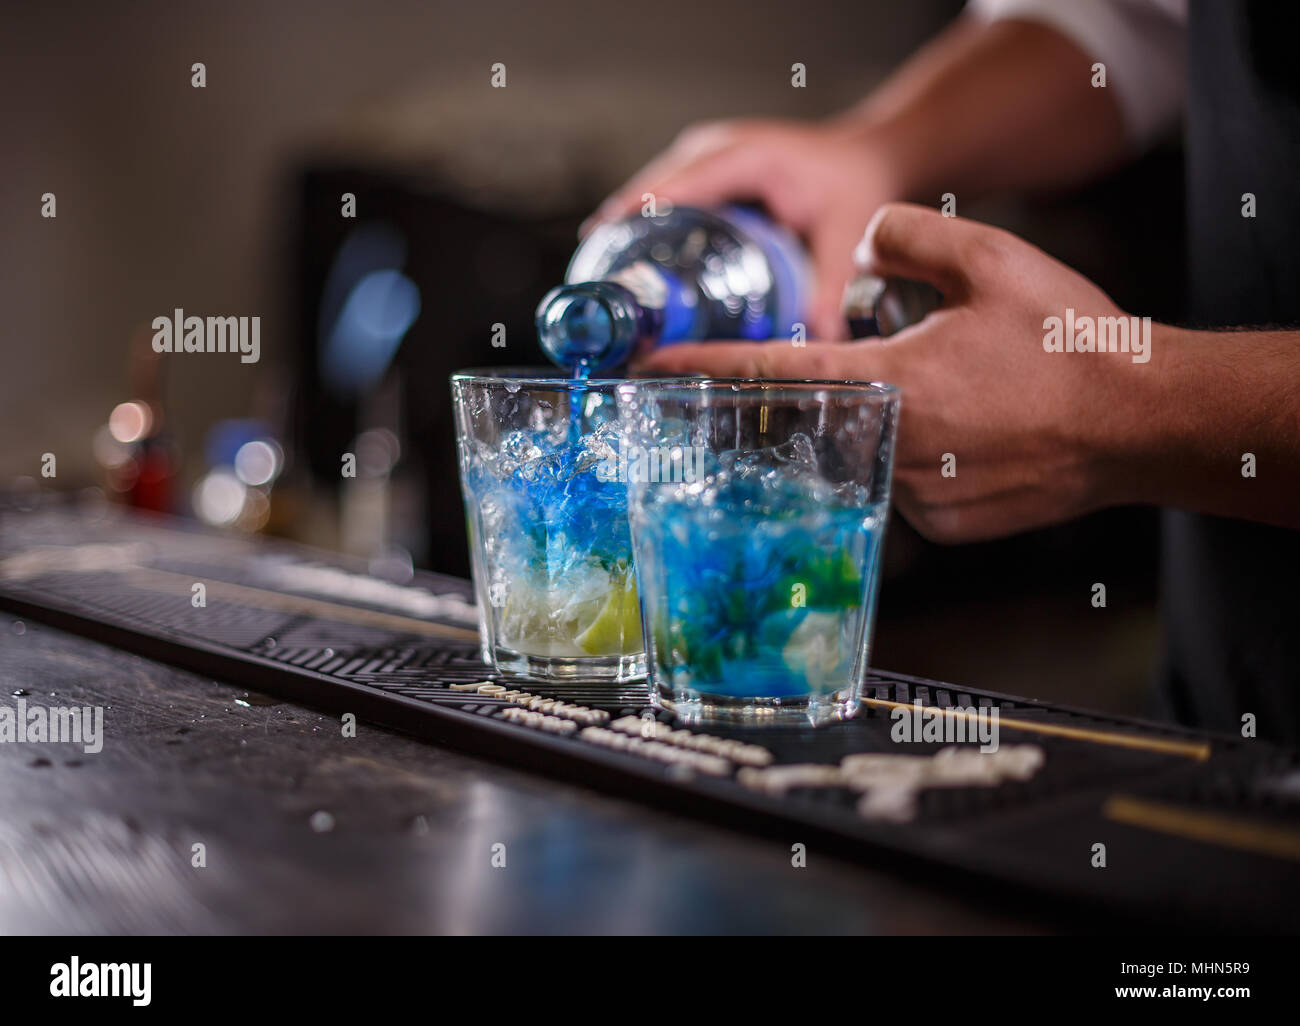 Barman pouring drink into a cocktail glass filled with ice cubes - Stock Image